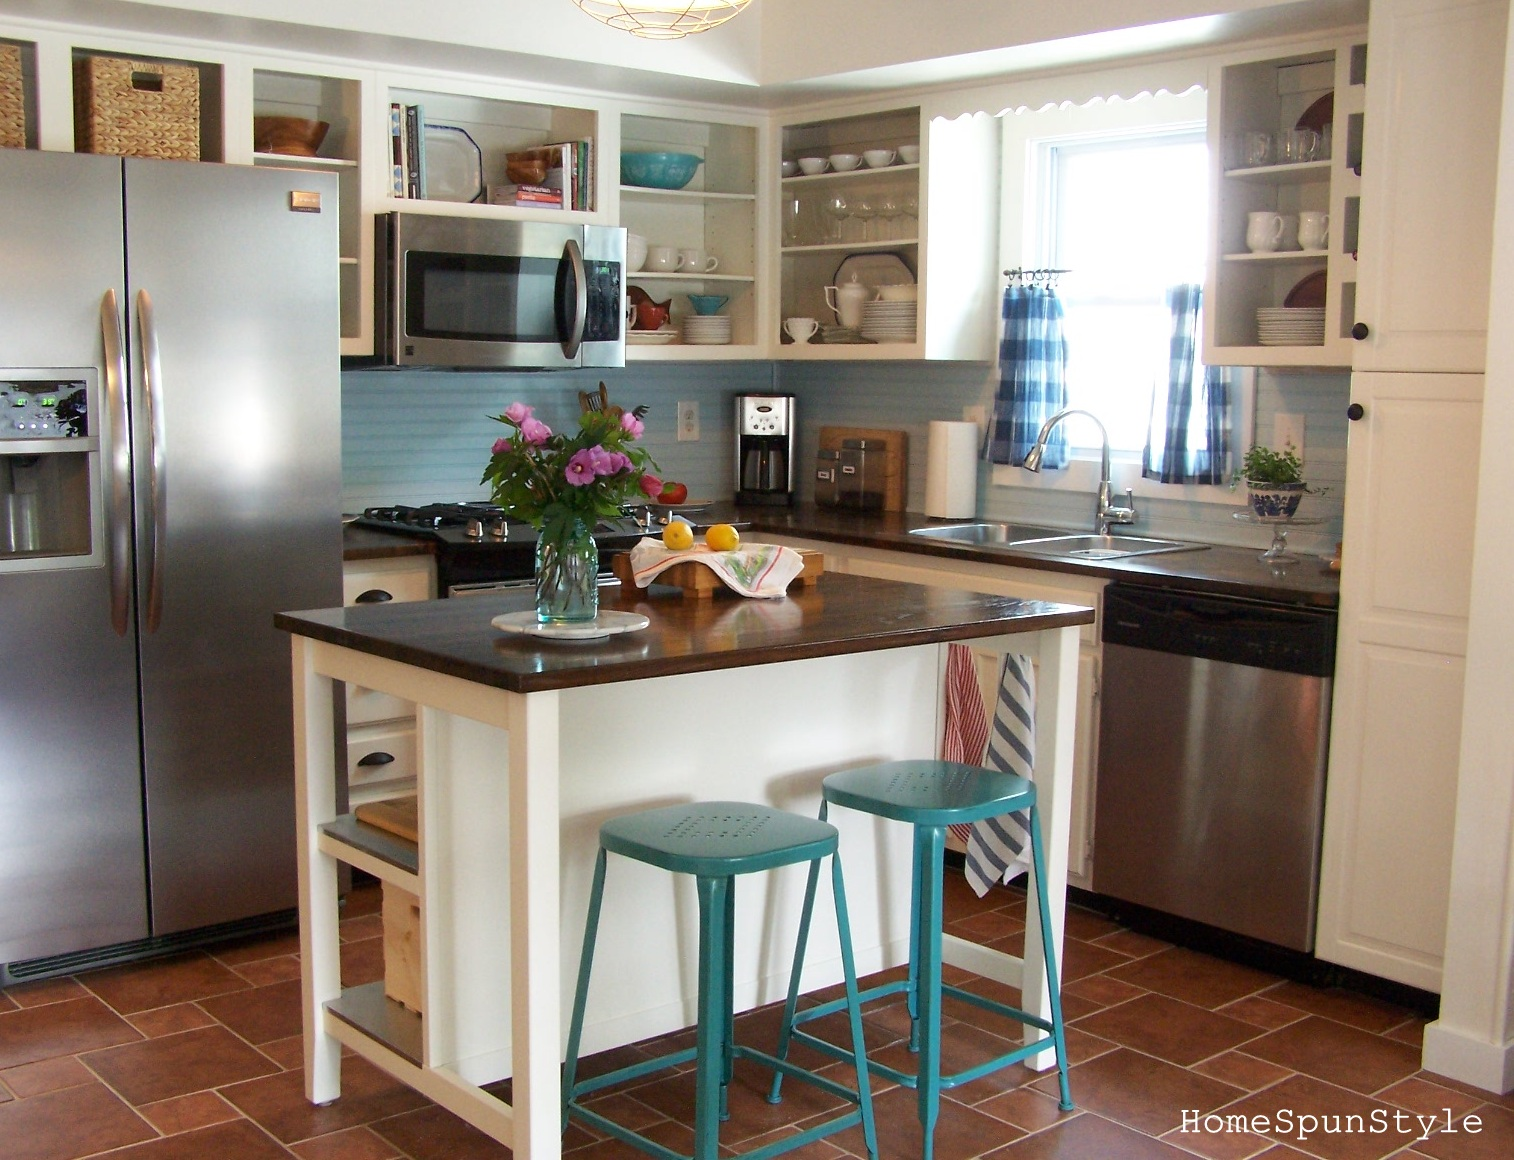 Beach Kitchen Beach Kitchen Reveal Before And After Home Spun Style